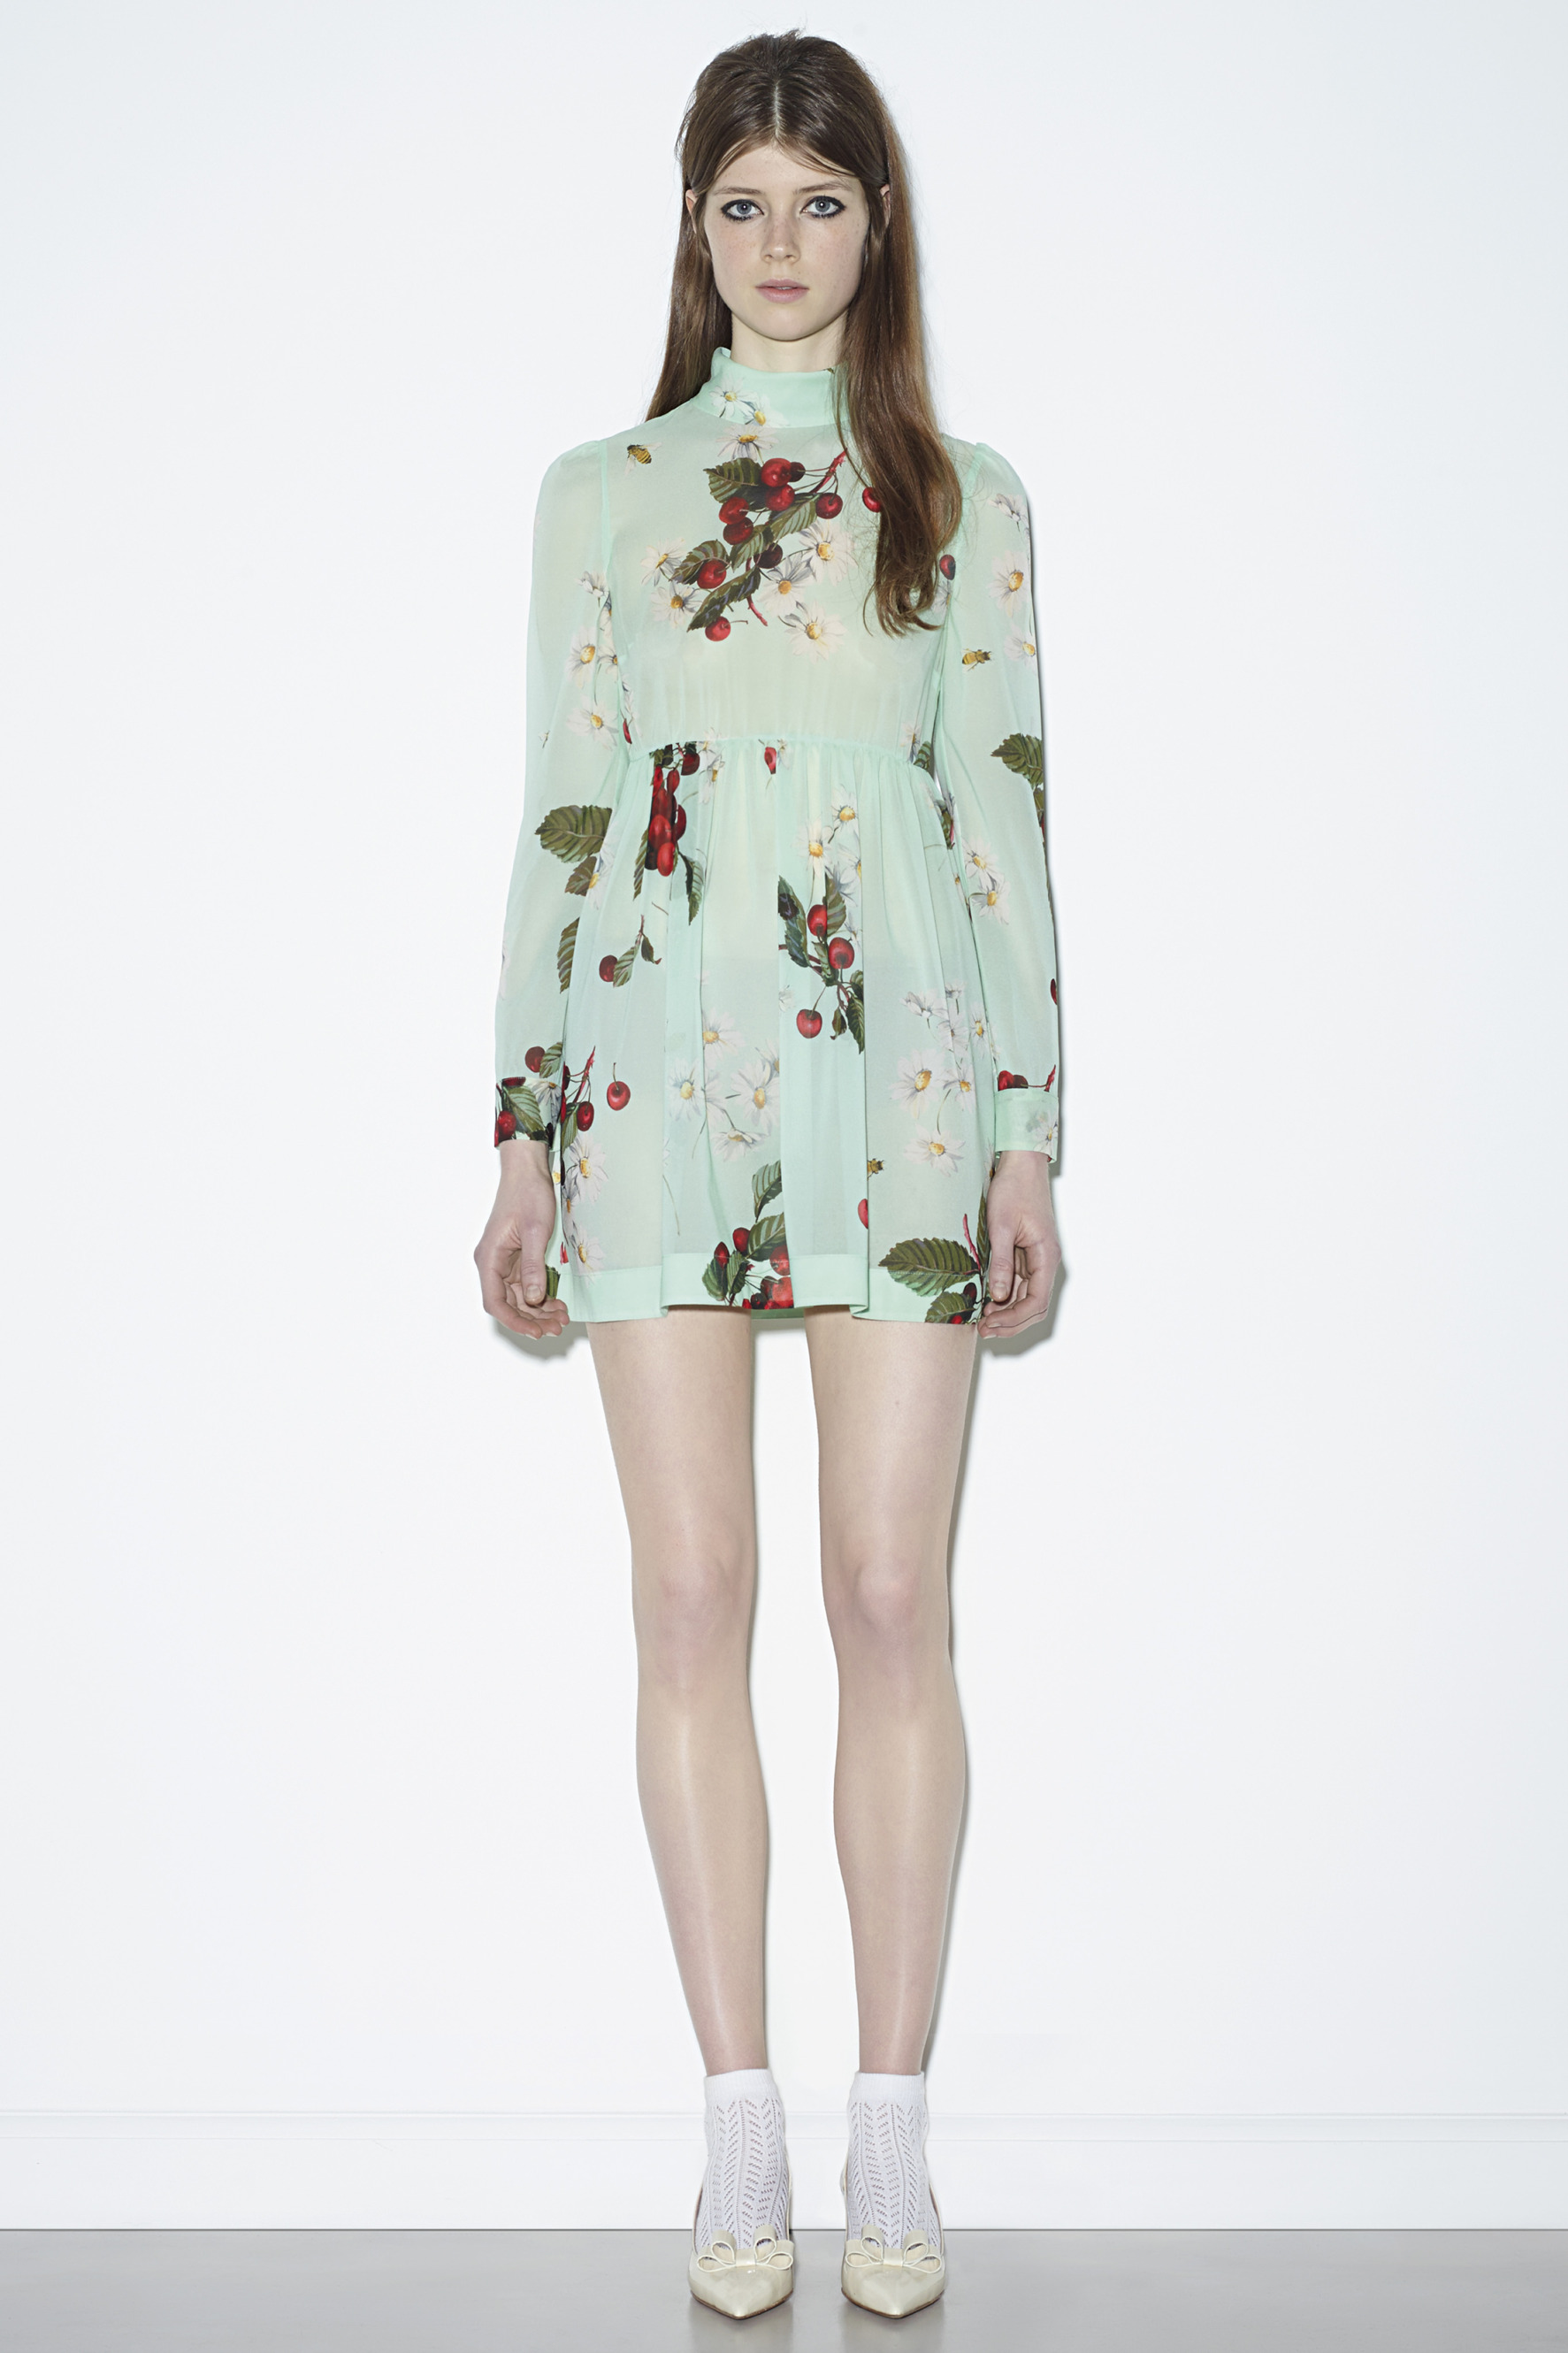 Red Valentino resort 2016 collection